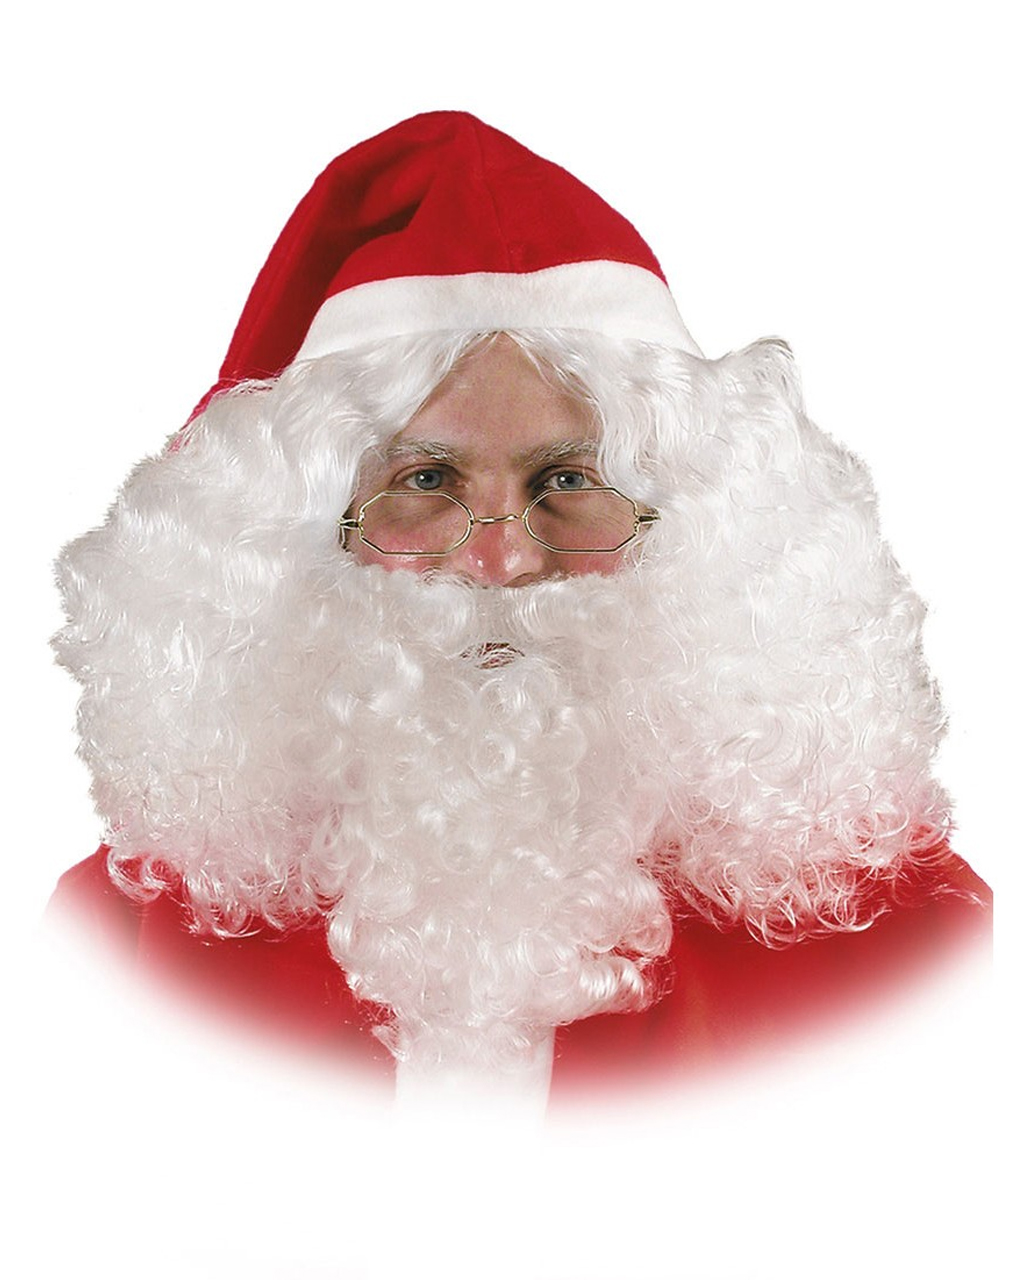 a3820f7a8e4da Santa Claus Wig And Beard for Christmas